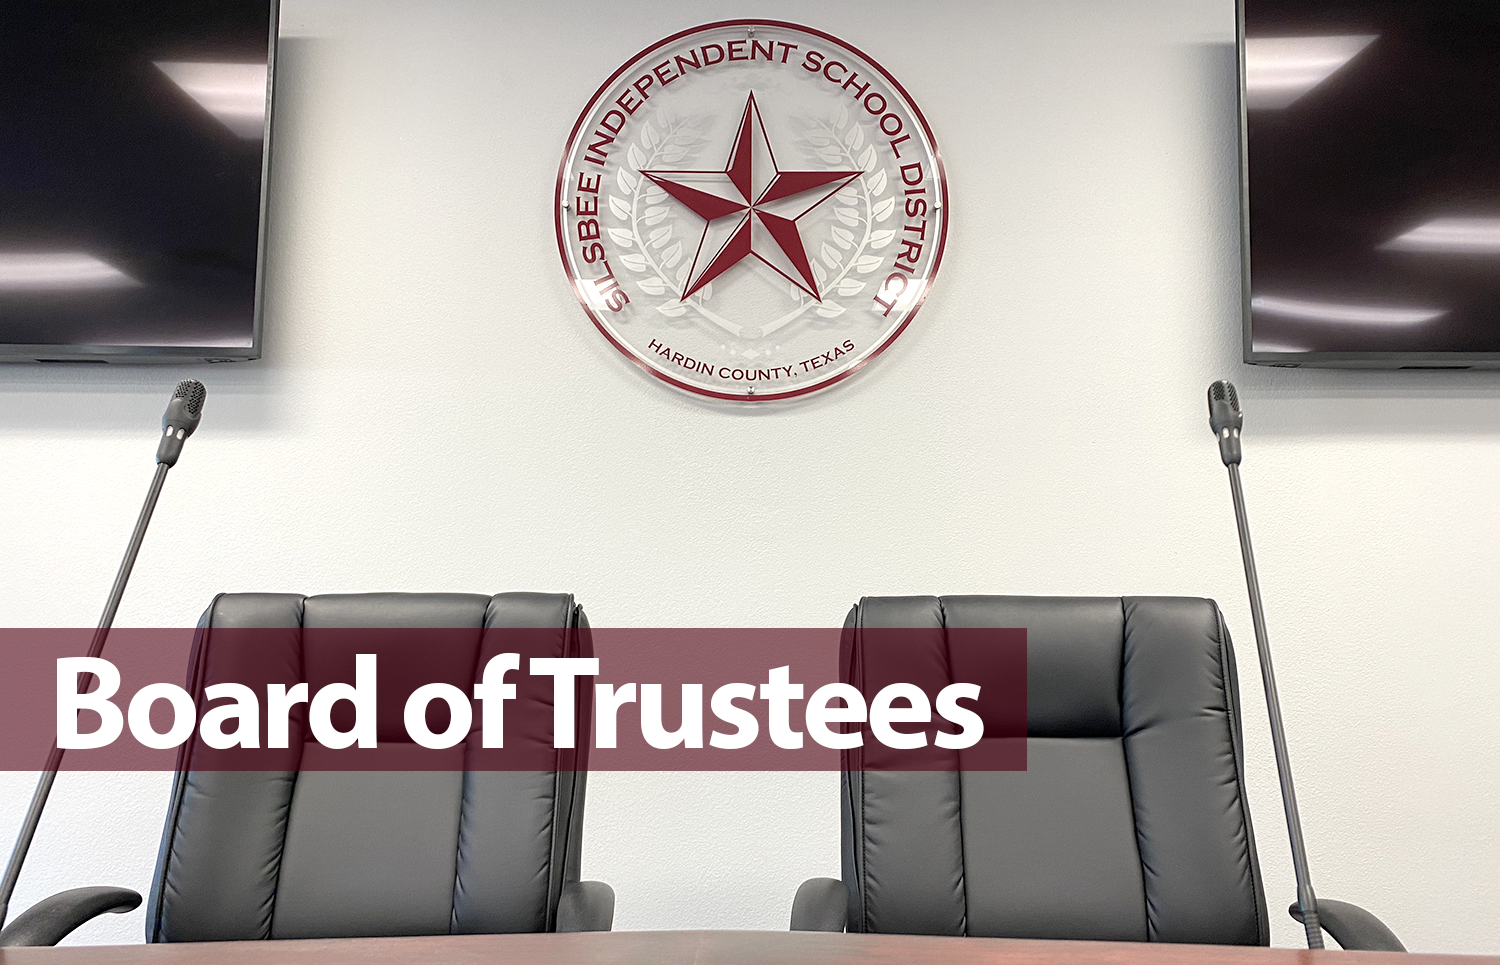 Board of Trustees sign